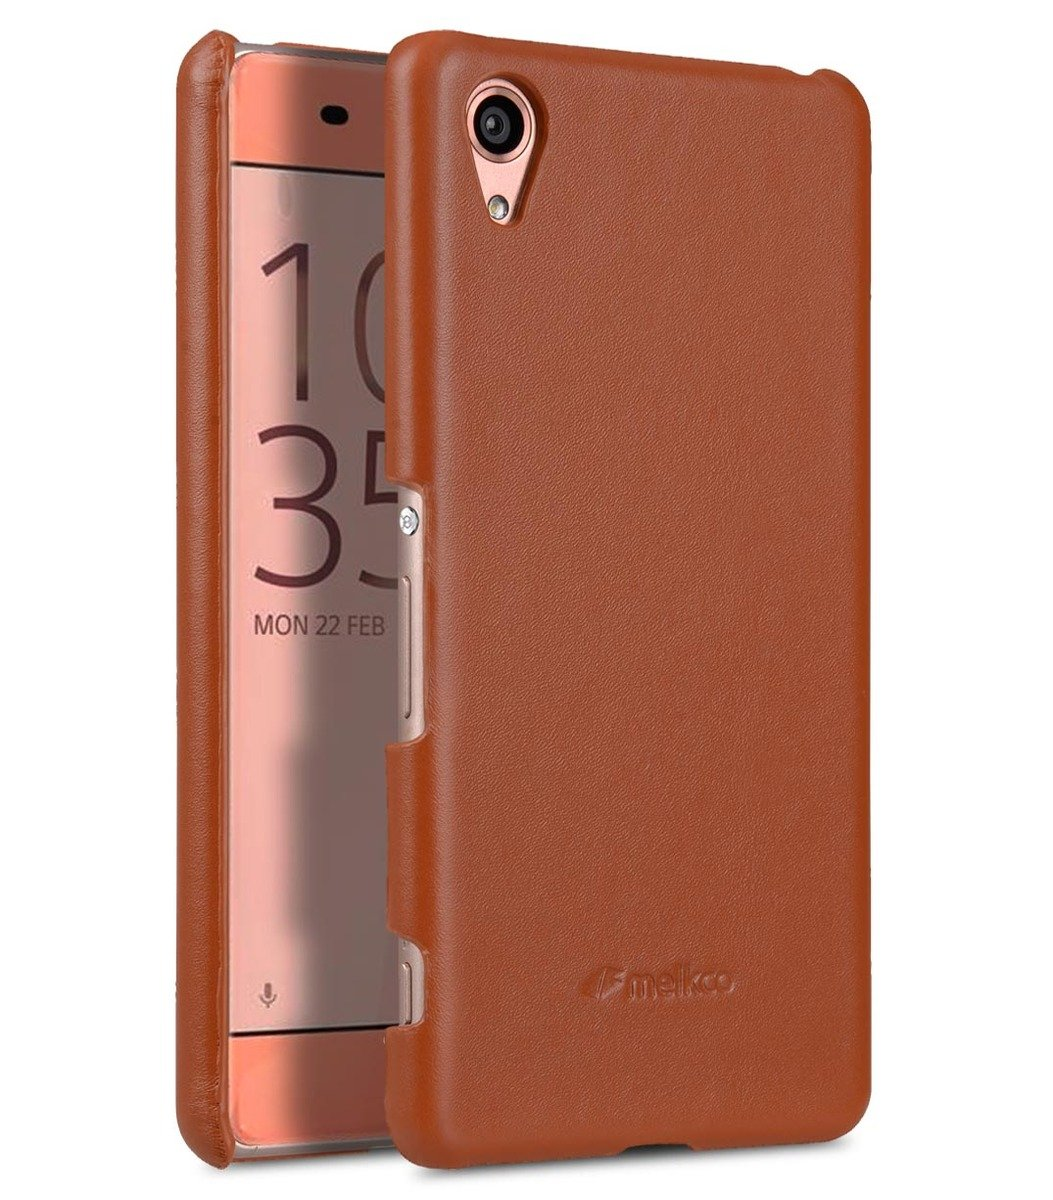 Sony Xperia XA Melkco Premium Genuine Leather Snap Cover-Traditional Vintage Brown